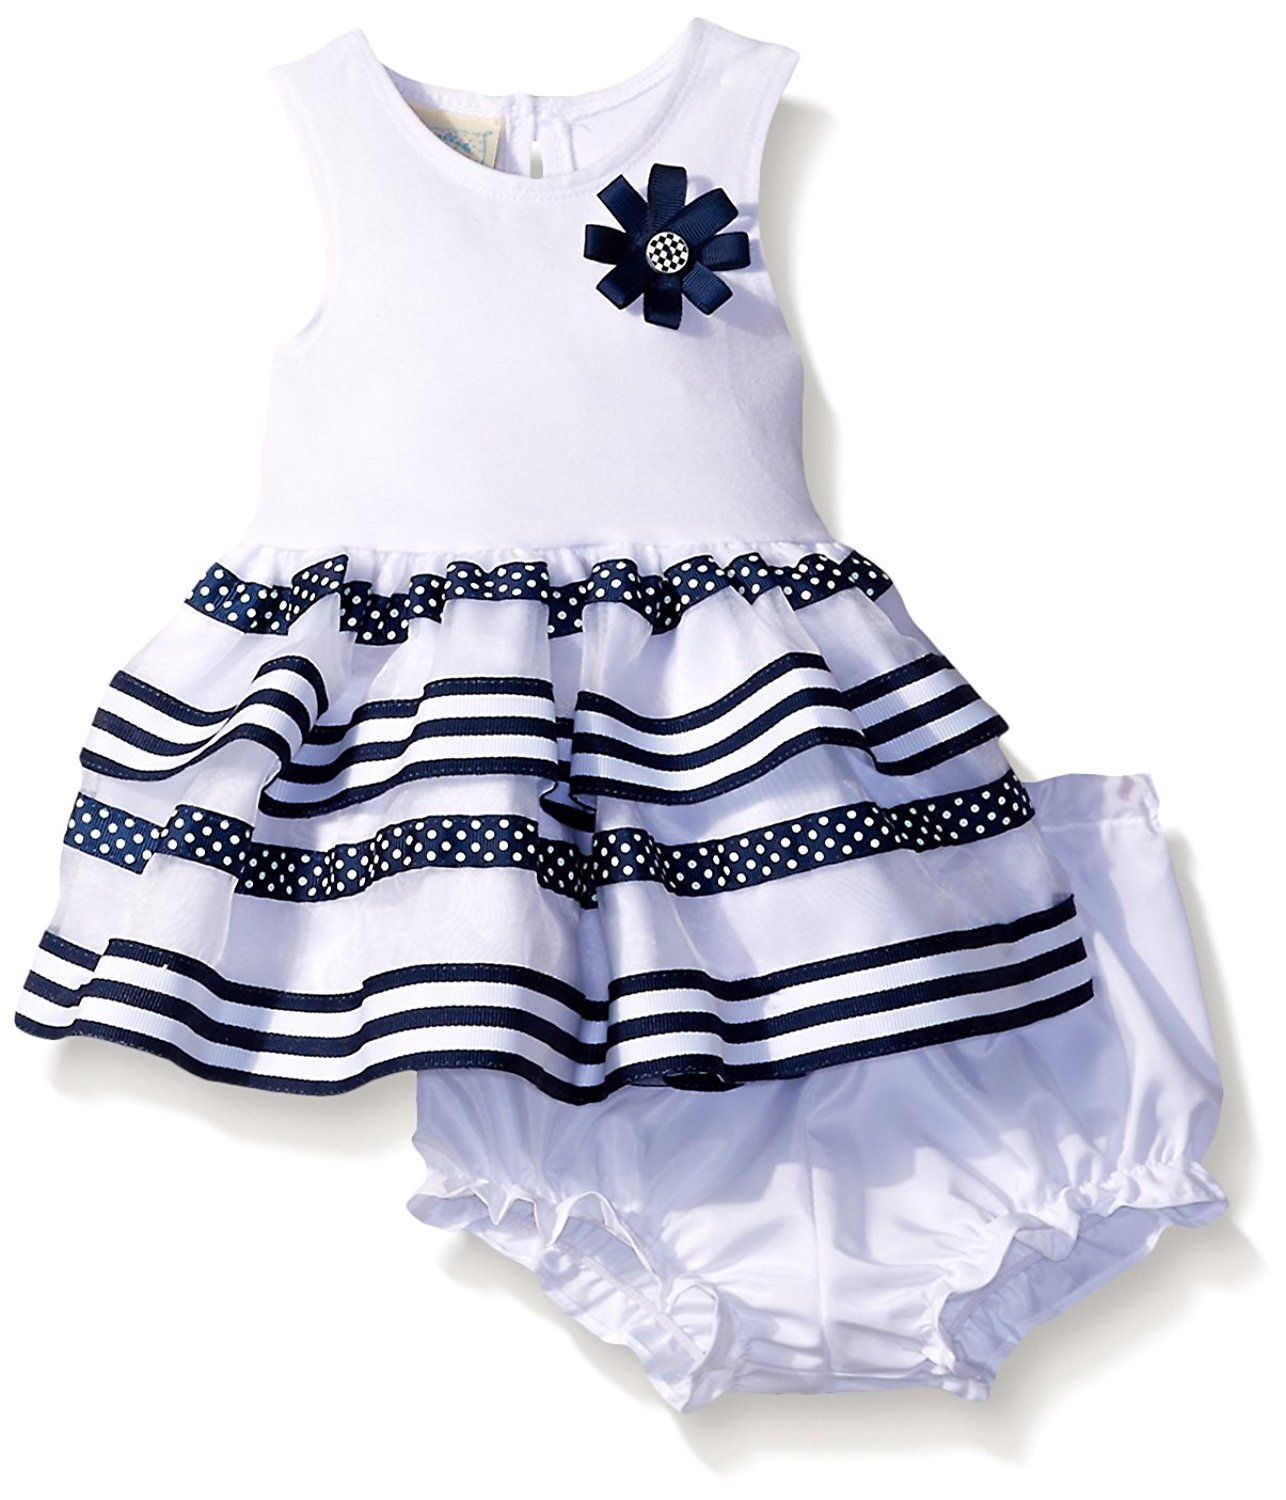 Marmellata Baby Girls Navy and Whit Striped Tank Dress New and